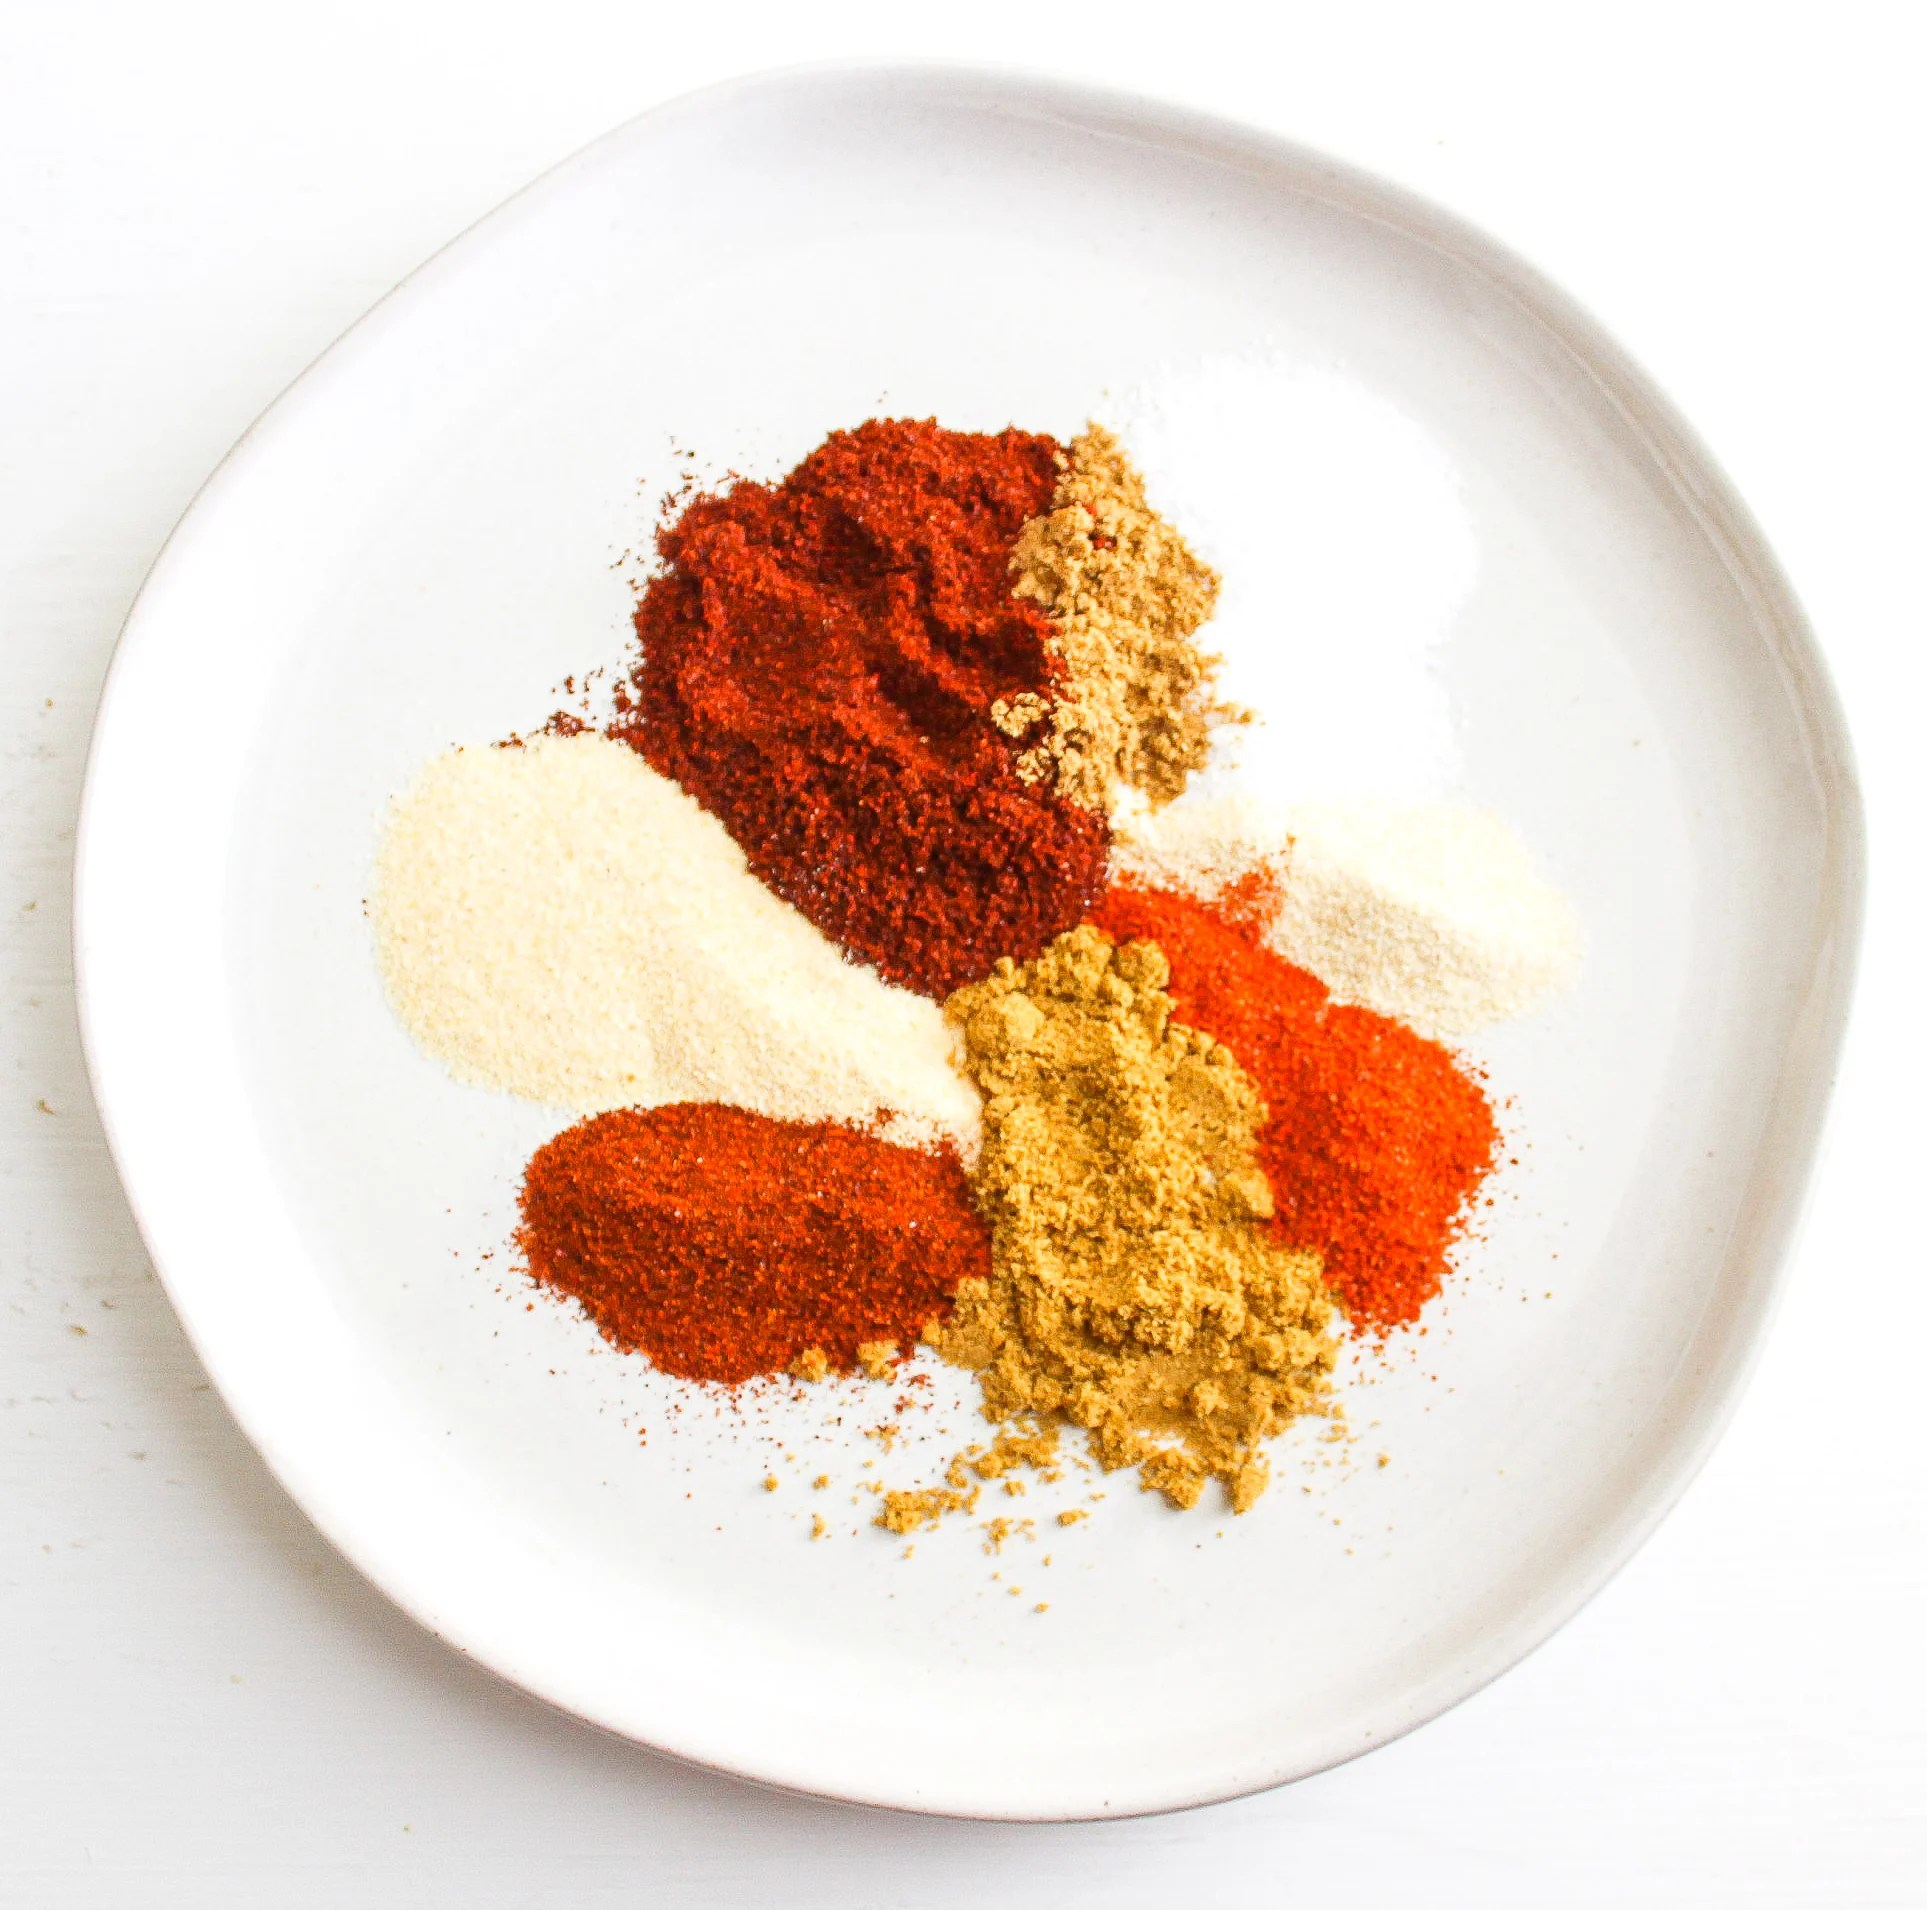 Assortment of herbs and spices on a white plate